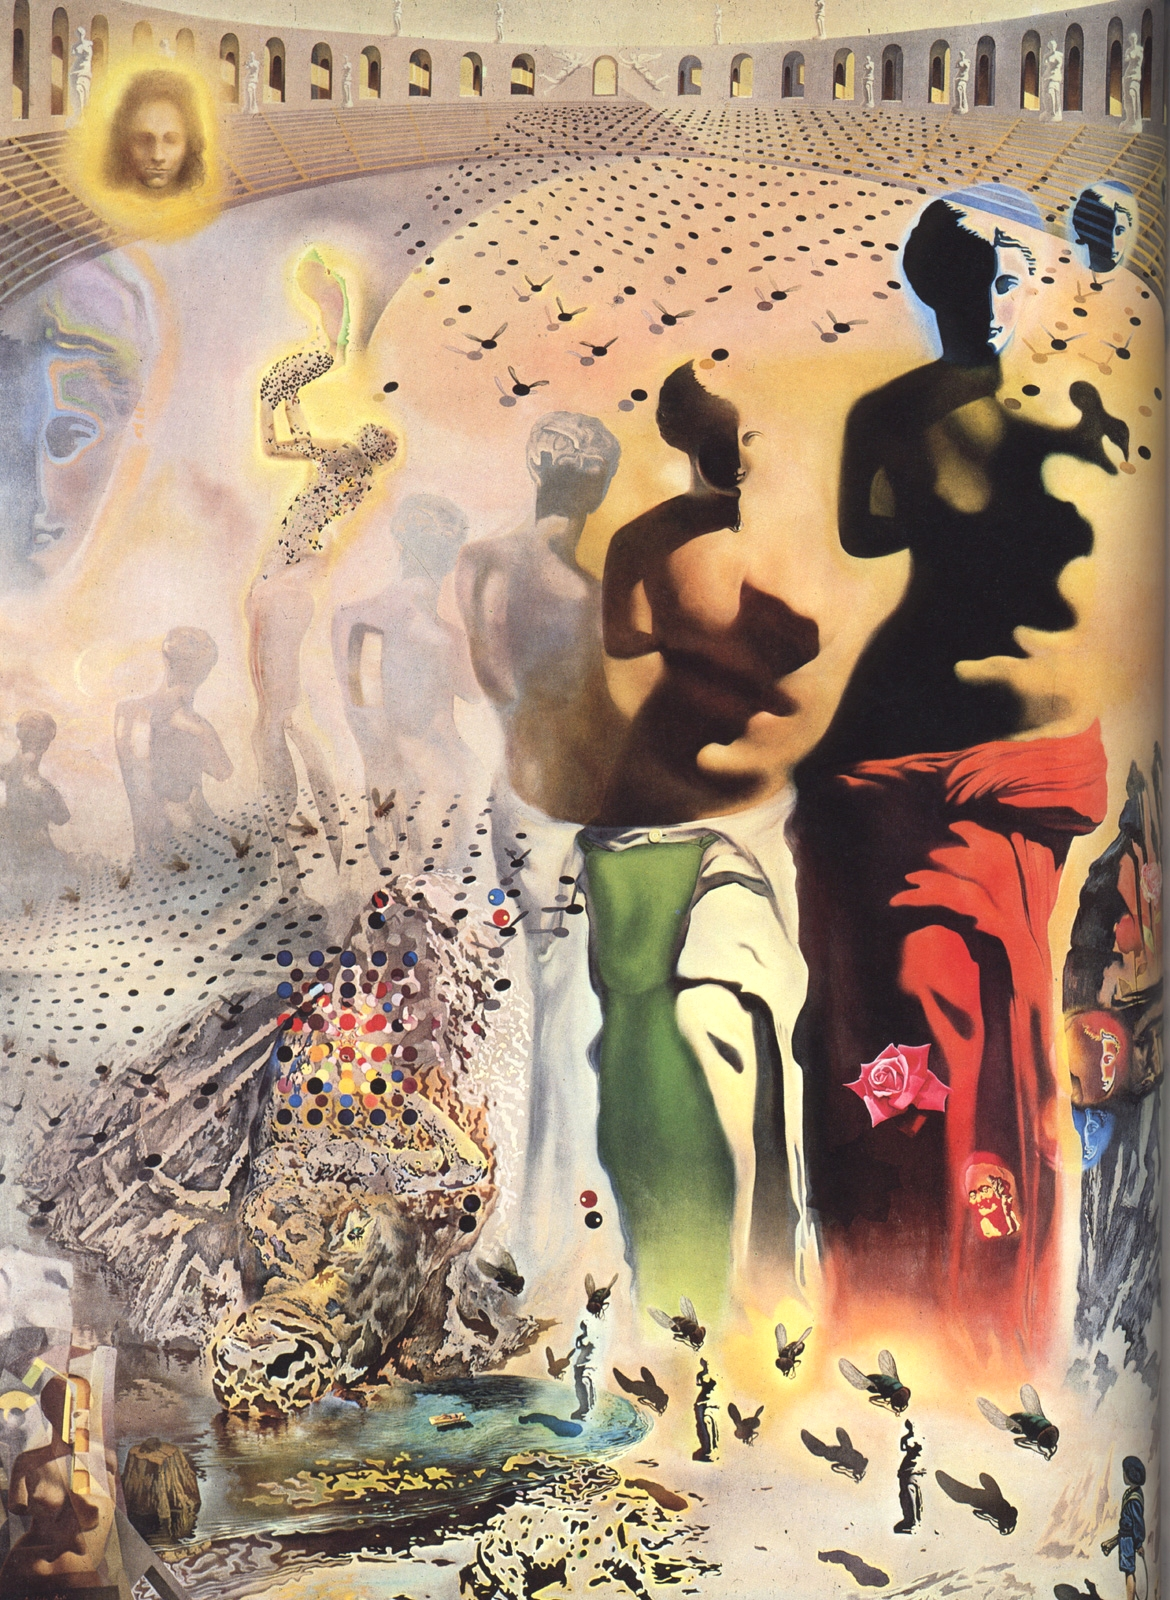 the role of salvado dali in the spread of surrealism Salvador domingo felipe jacinto dalí i domènech, 1st marquis of dalí de púbol  (11 may 1904  at the time dalí was not yet immersed in the surrealist style for  which he would later become famous  dalí later claimed to have also played a  significant role in the filming of the project, but this is not substantiated by.